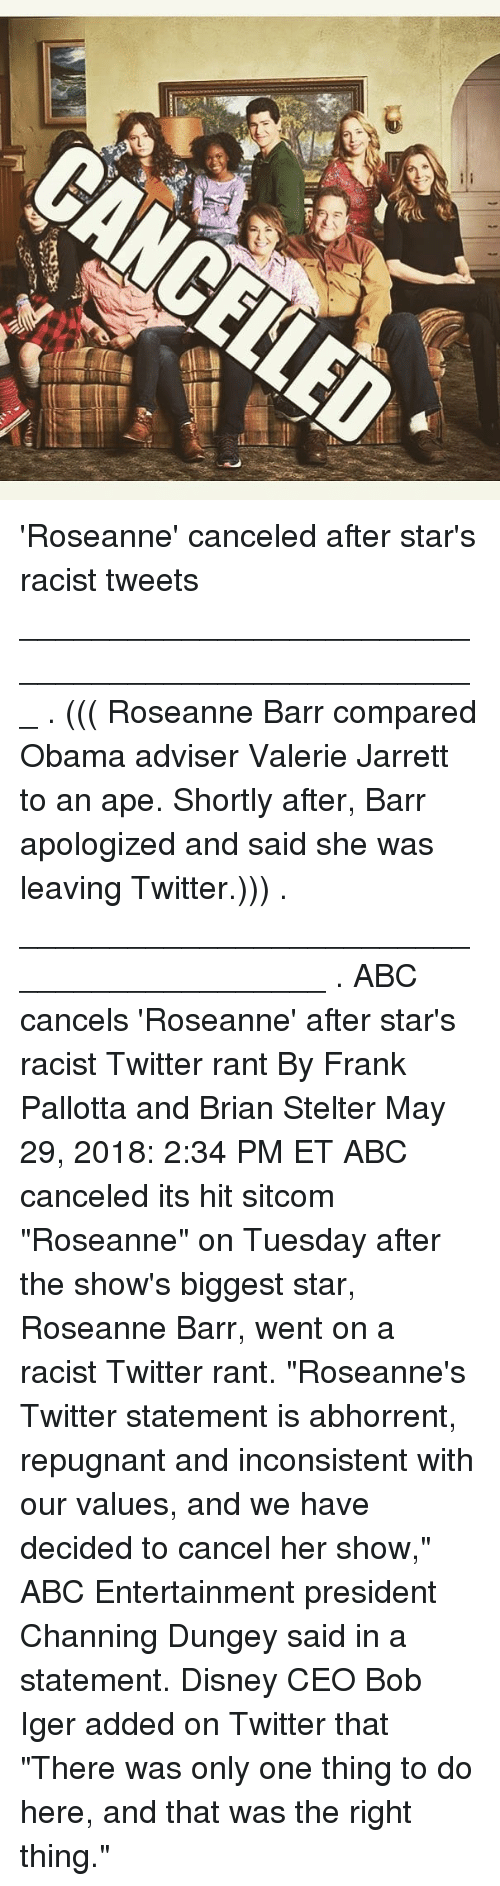 "Abc, Disney, and Memes: 'Roseanne' canceled after star's racist tweets ___________________________________________________ . ((( Roseanne Barr compared Obama adviser Valerie Jarrett to an ape. Shortly after, Barr apologized and said she was leaving Twitter.))) . __________________________________________ . ABC cancels 'Roseanne' after star's racist Twitter rant By Frank Pallotta and Brian Stelter May 29, 2018: 2:34 PM ET ABC canceled its hit sitcom ""Roseanne"" on Tuesday after the show's biggest star, Roseanne Barr, went on a racist Twitter rant. ""Roseanne's Twitter statement is abhorrent, repugnant and inconsistent with our values, and we have decided to cancel her show,"" ABC Entertainment president Channing Dungey said in a statement. Disney CEO Bob Iger added on Twitter that ""There was only one thing to do here, and that was the right thing."""